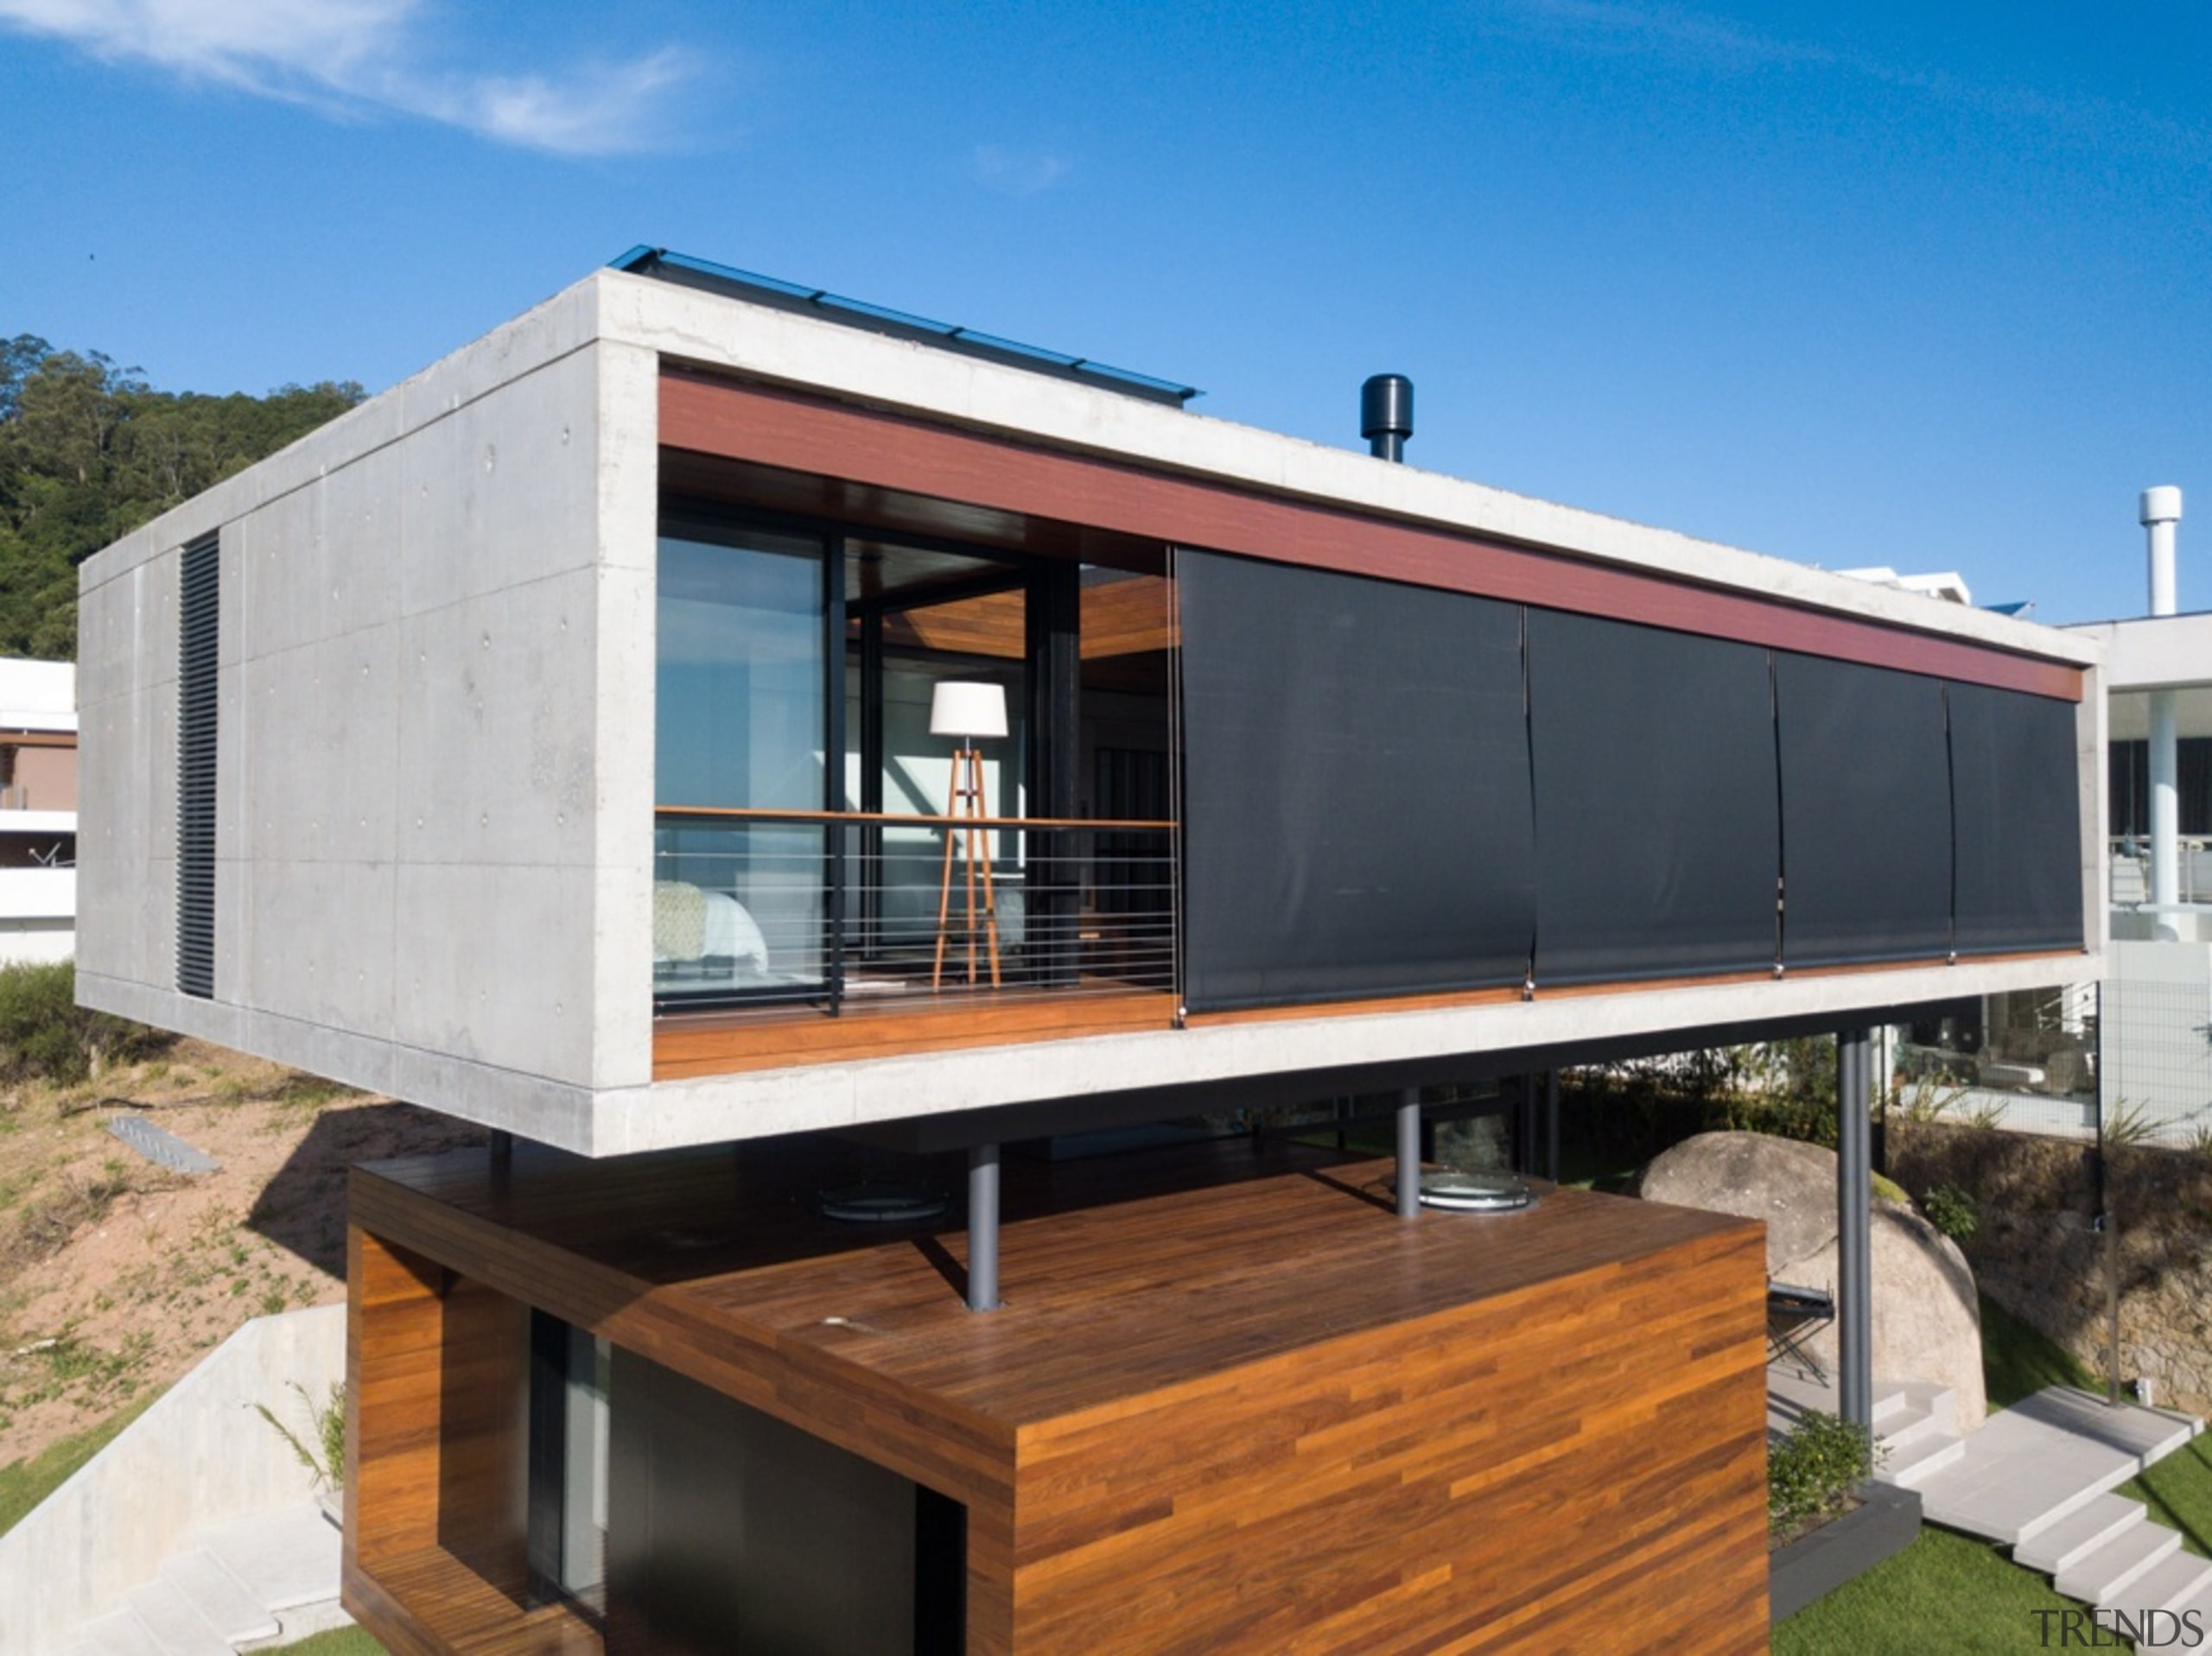 It's a home of concrete and wood volumes architecture, facade, home, house, real estate, siding, teal